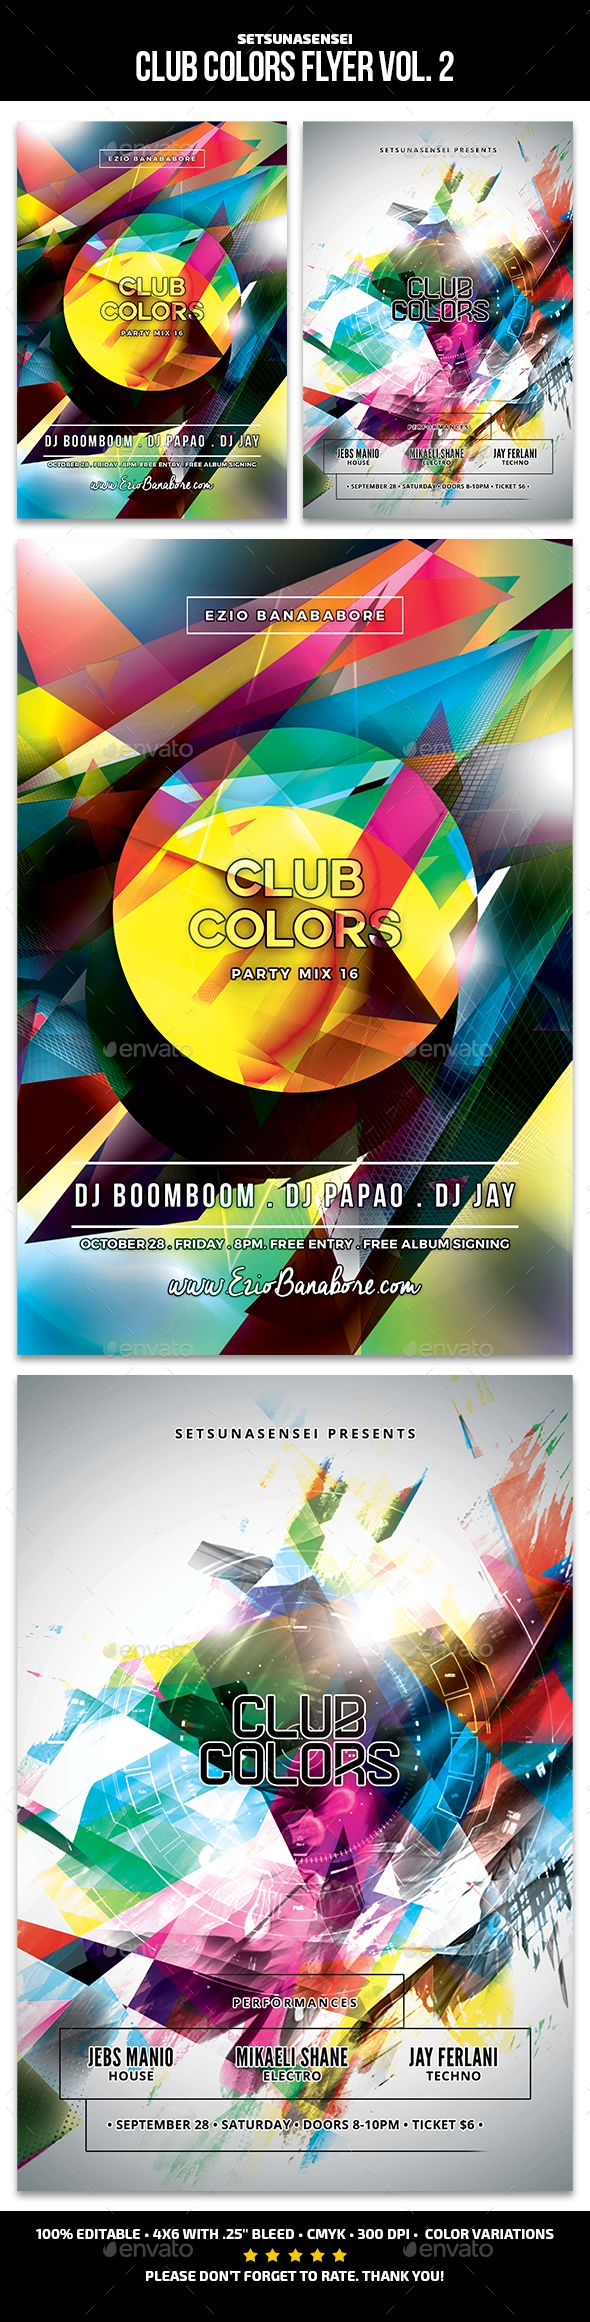 club colors flyer vol 2these flyers are perfect for promoting your